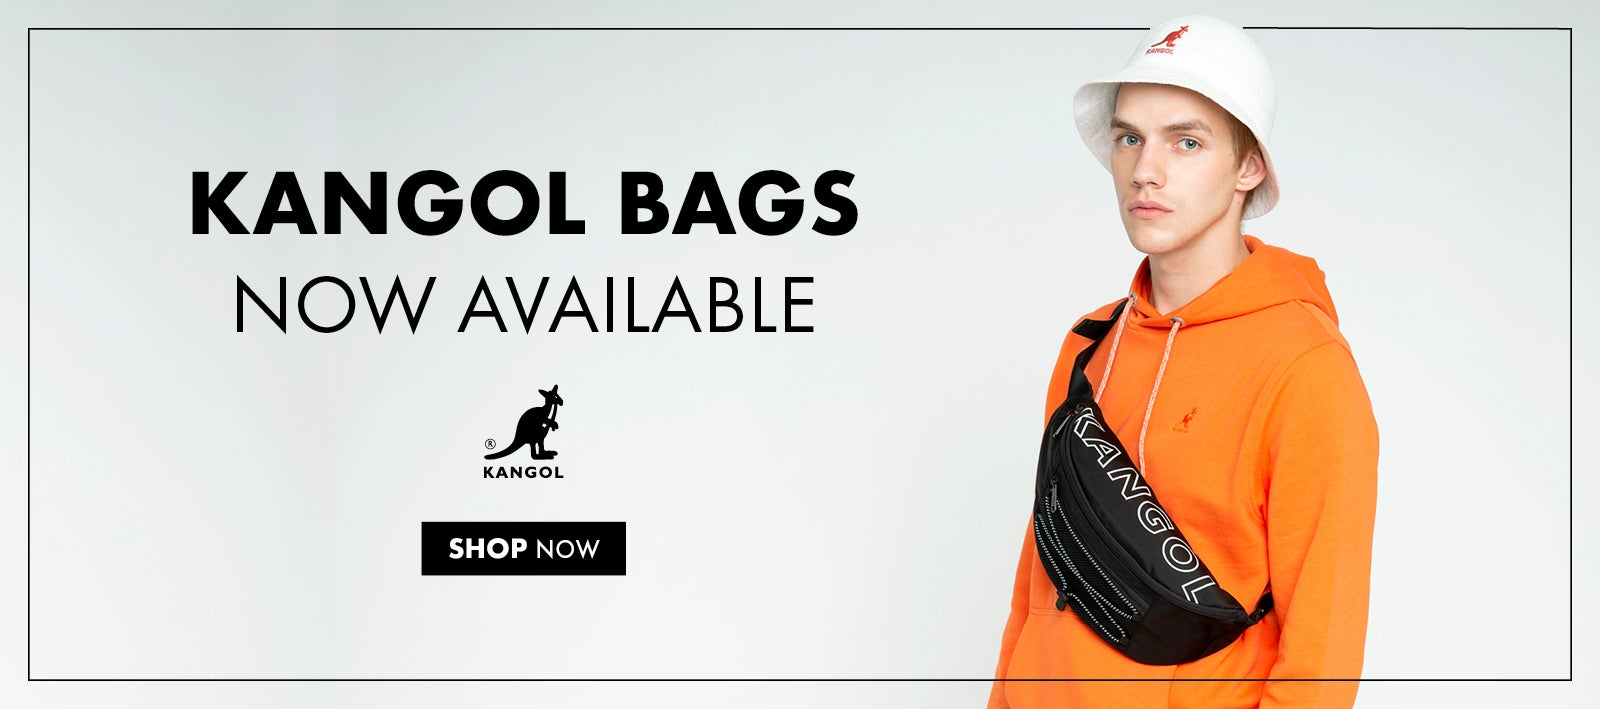 Kangol Bags Now Available